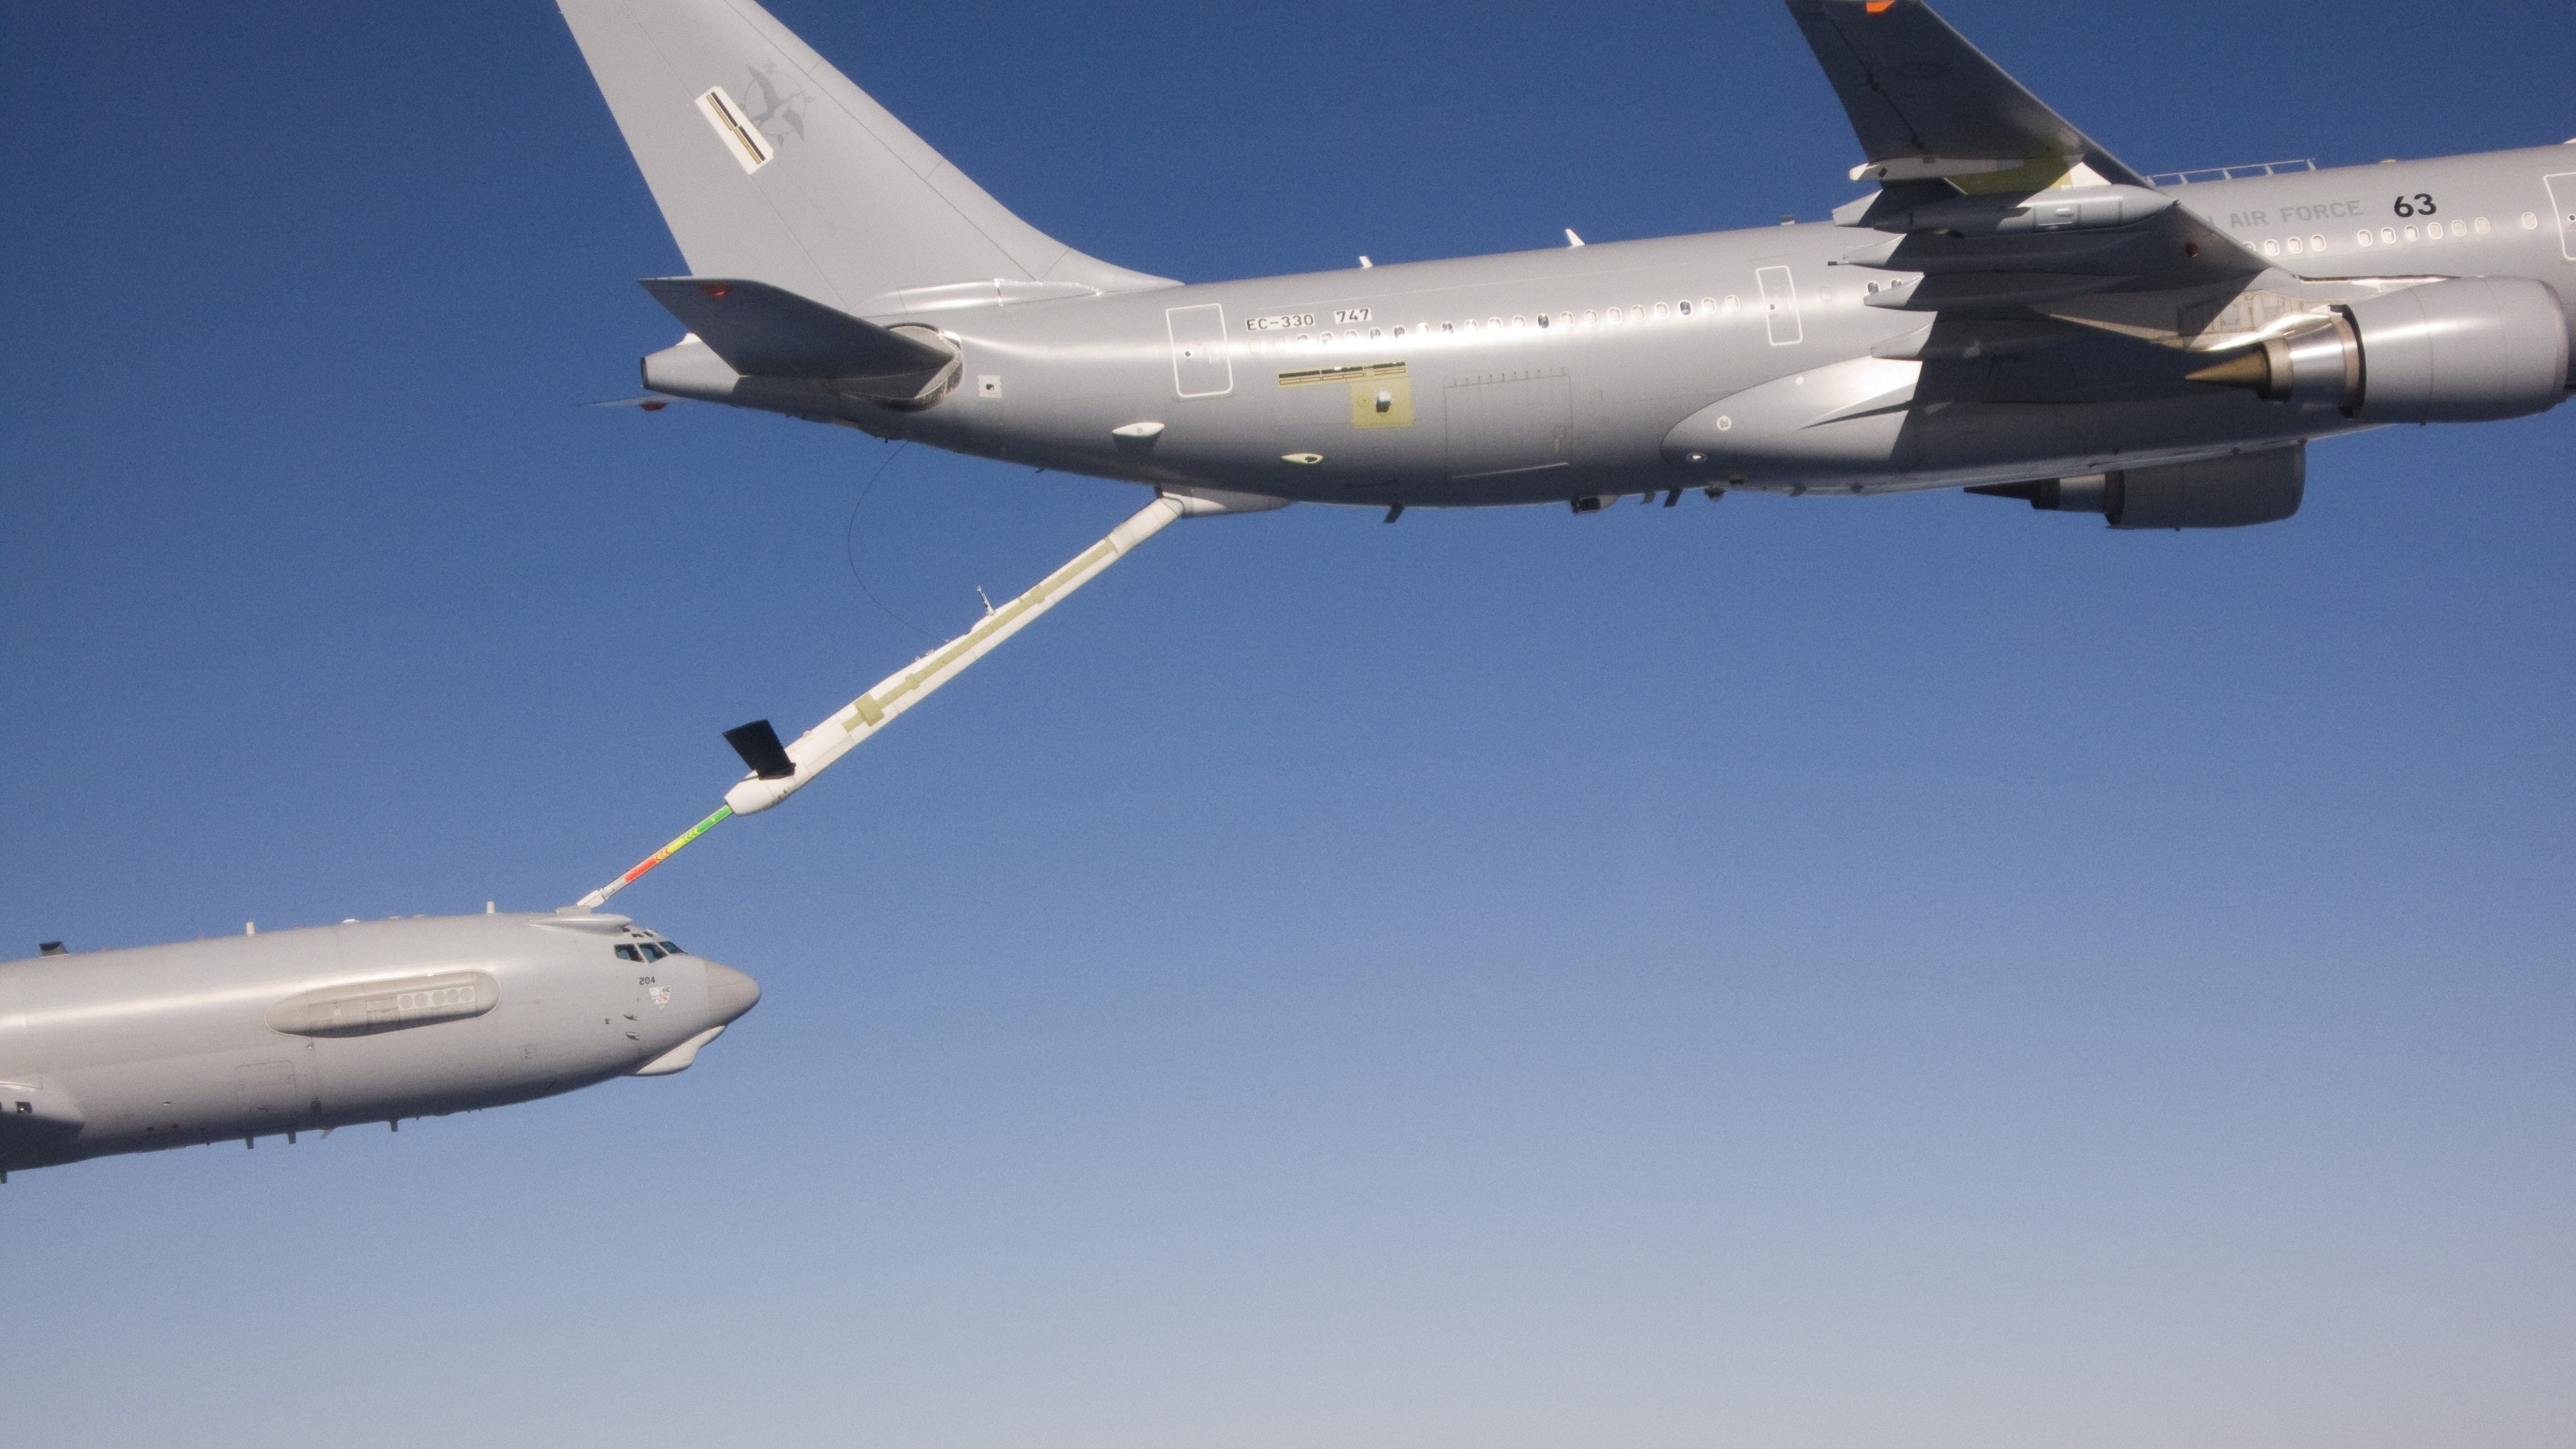 An Australian tanker, the same type of aircraft as Voyager, using its boom to refuel an aircraft.